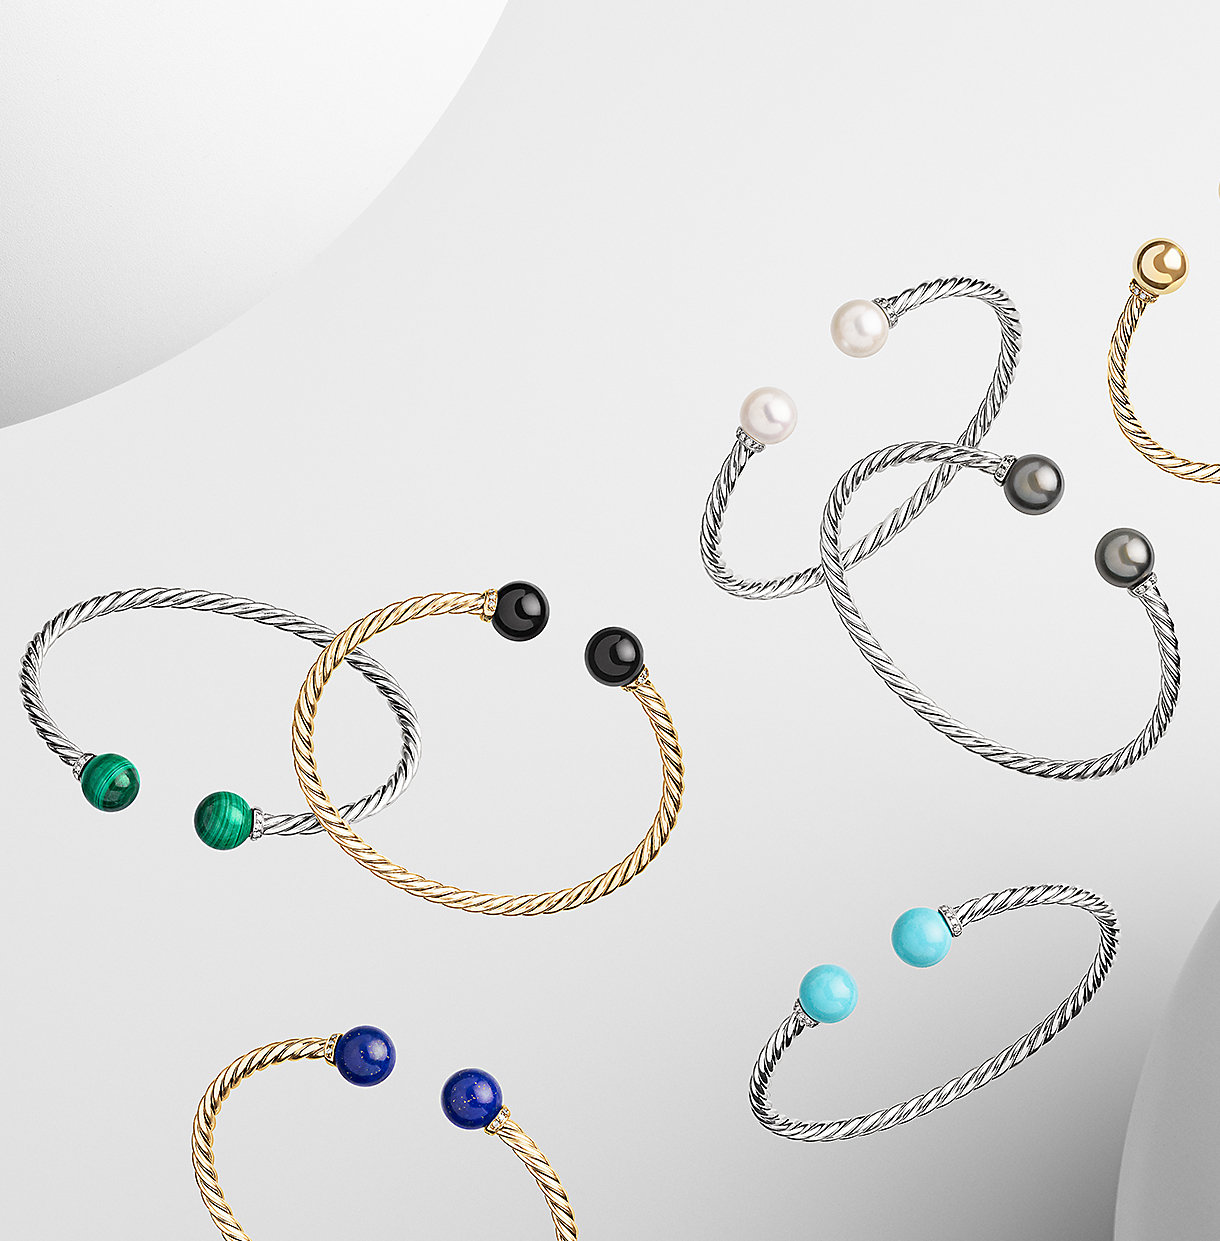 18k gold and sterling silver bracelets with gemstones